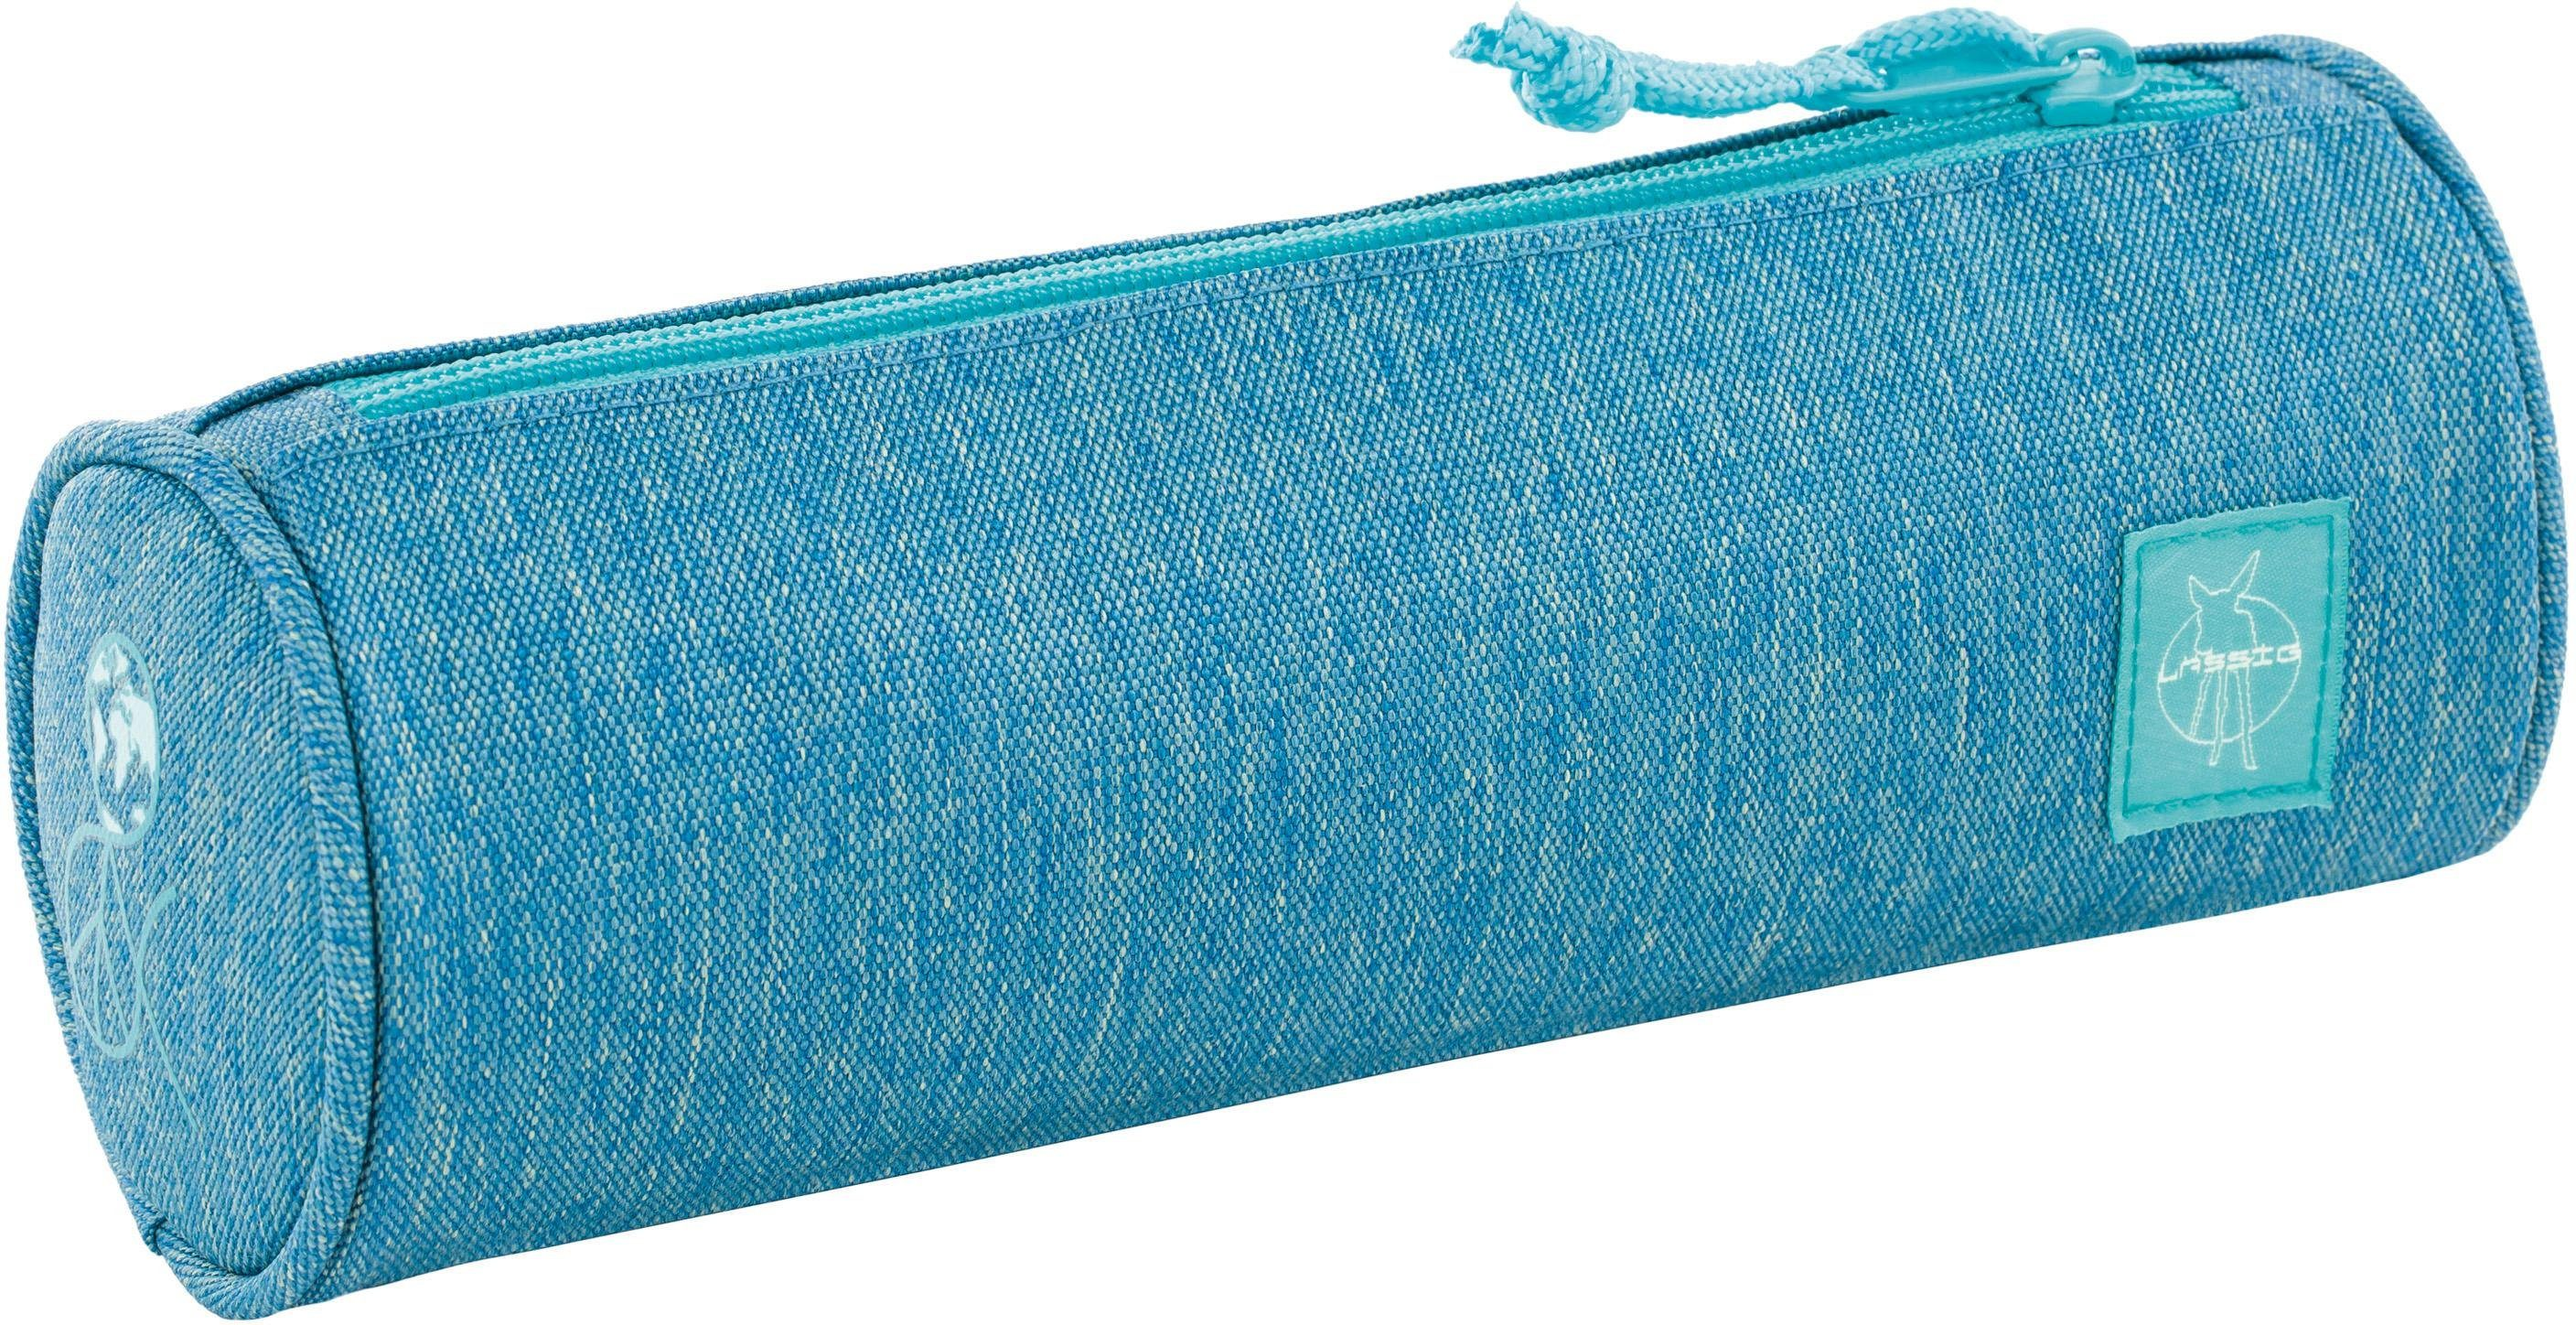 Lässig Schlampermäppchen, »4Kids School Pencil Case, Mélange Blue«